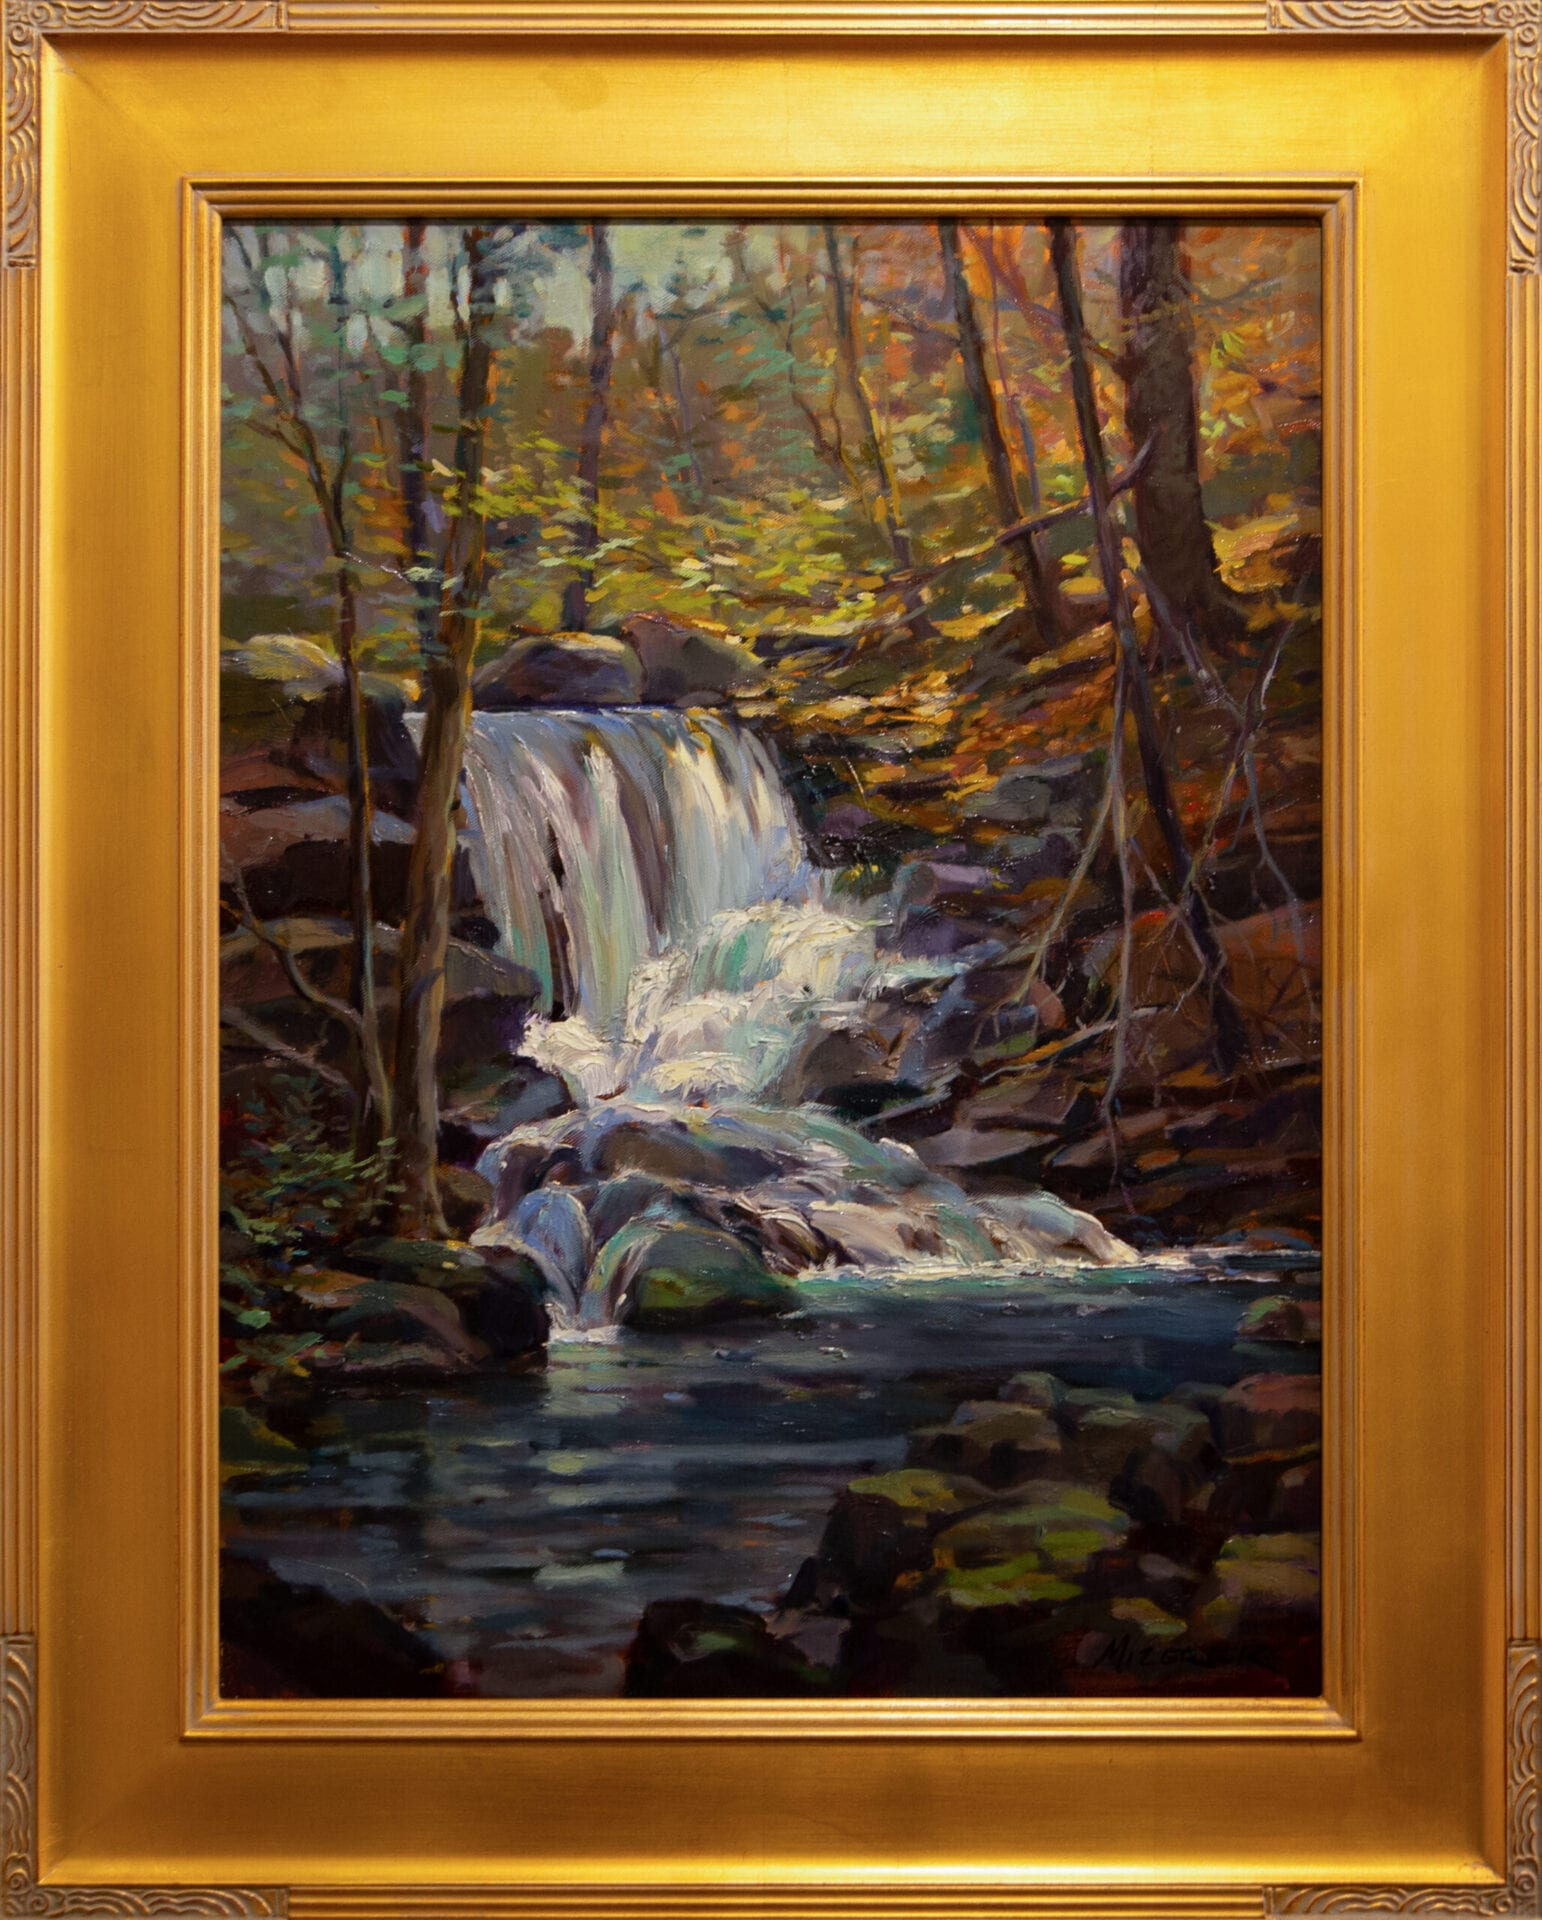 Waterfall by the Trail | Leonard Mizerek | Oil | 24 x 18""